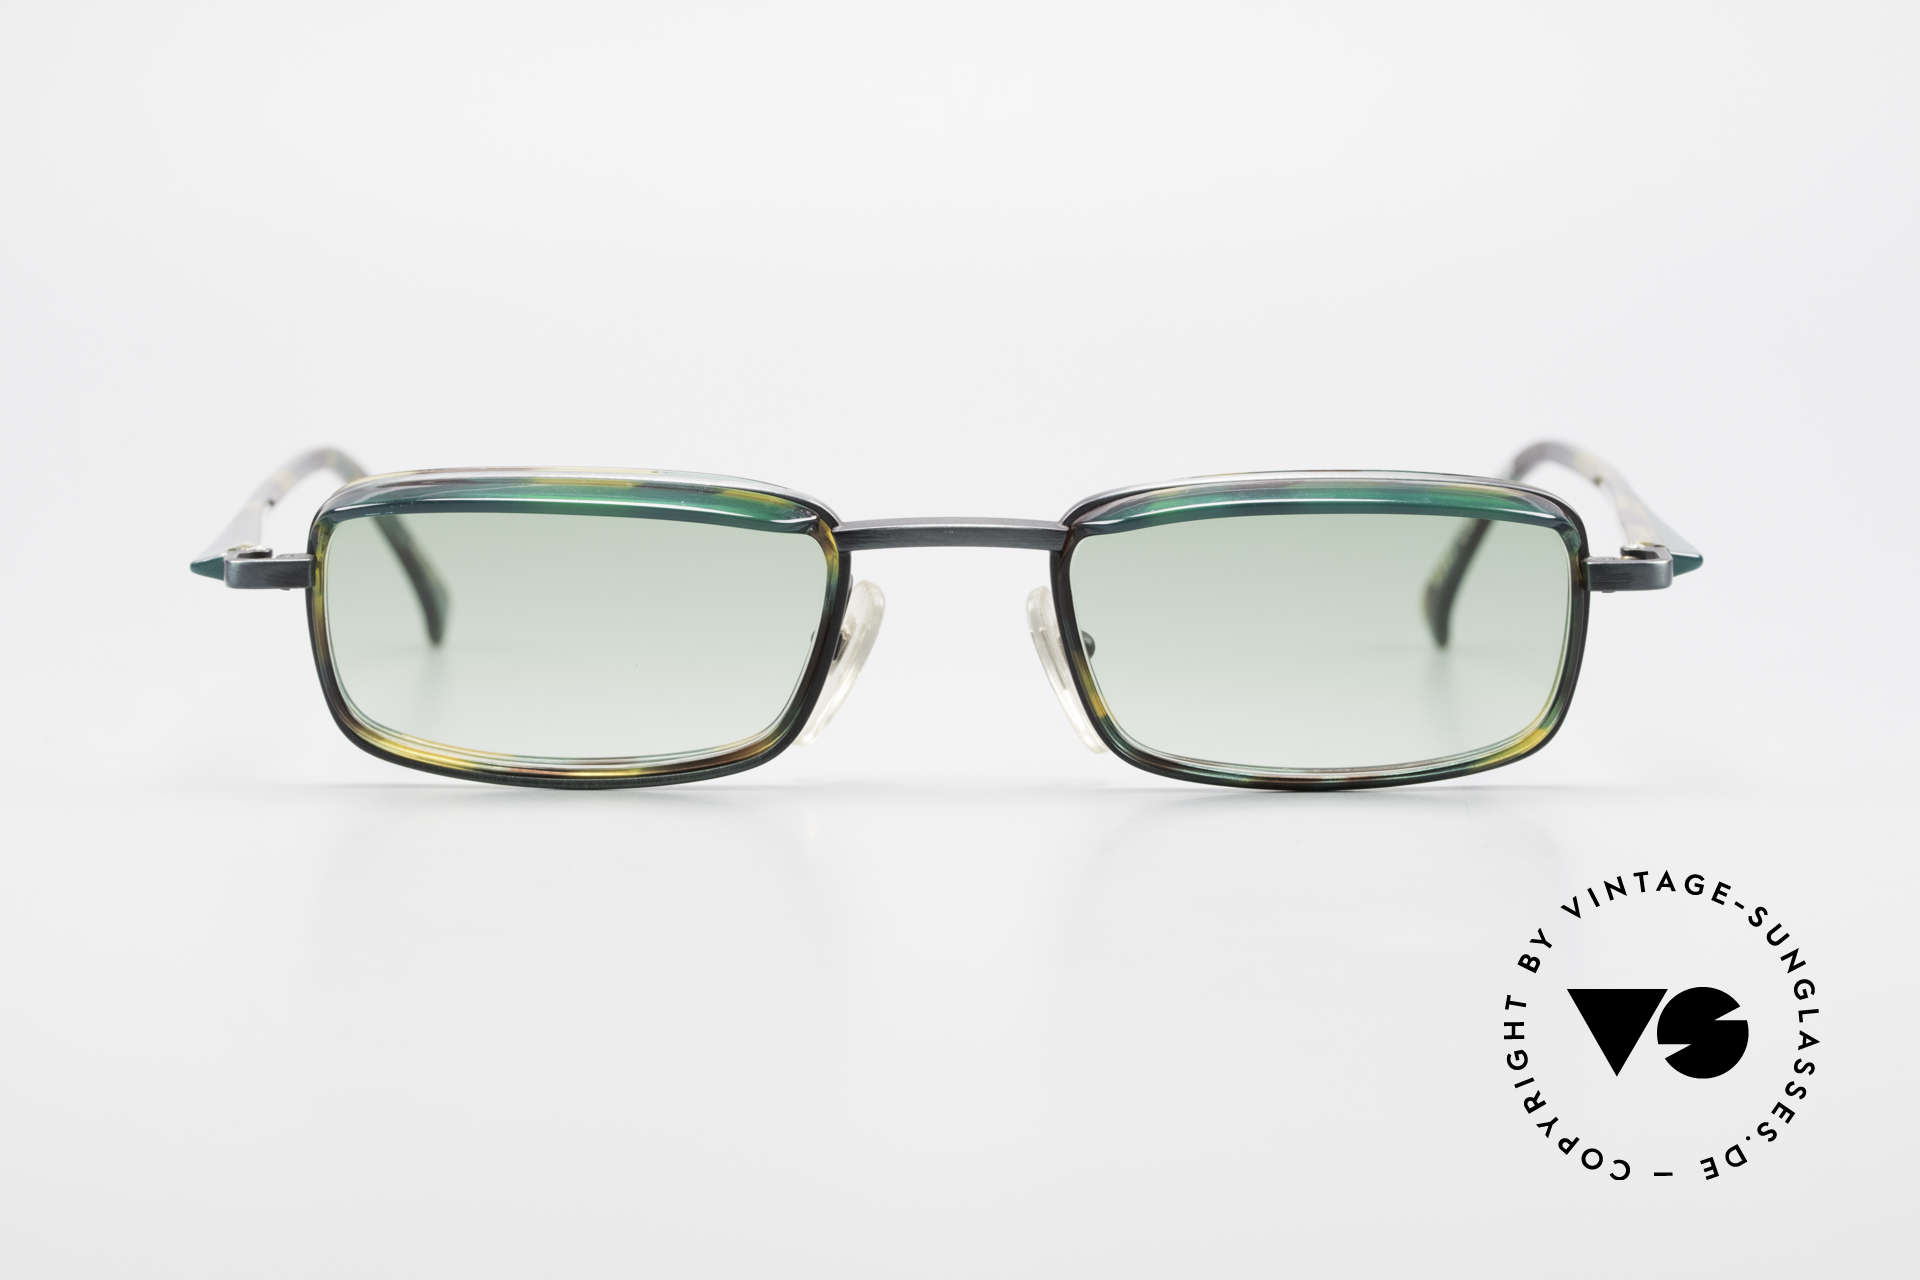 Alain Mikli 1147 / 3509 Square Designer Frame 90's, lovely combination of materials, forms & colors, Made for Men and Women